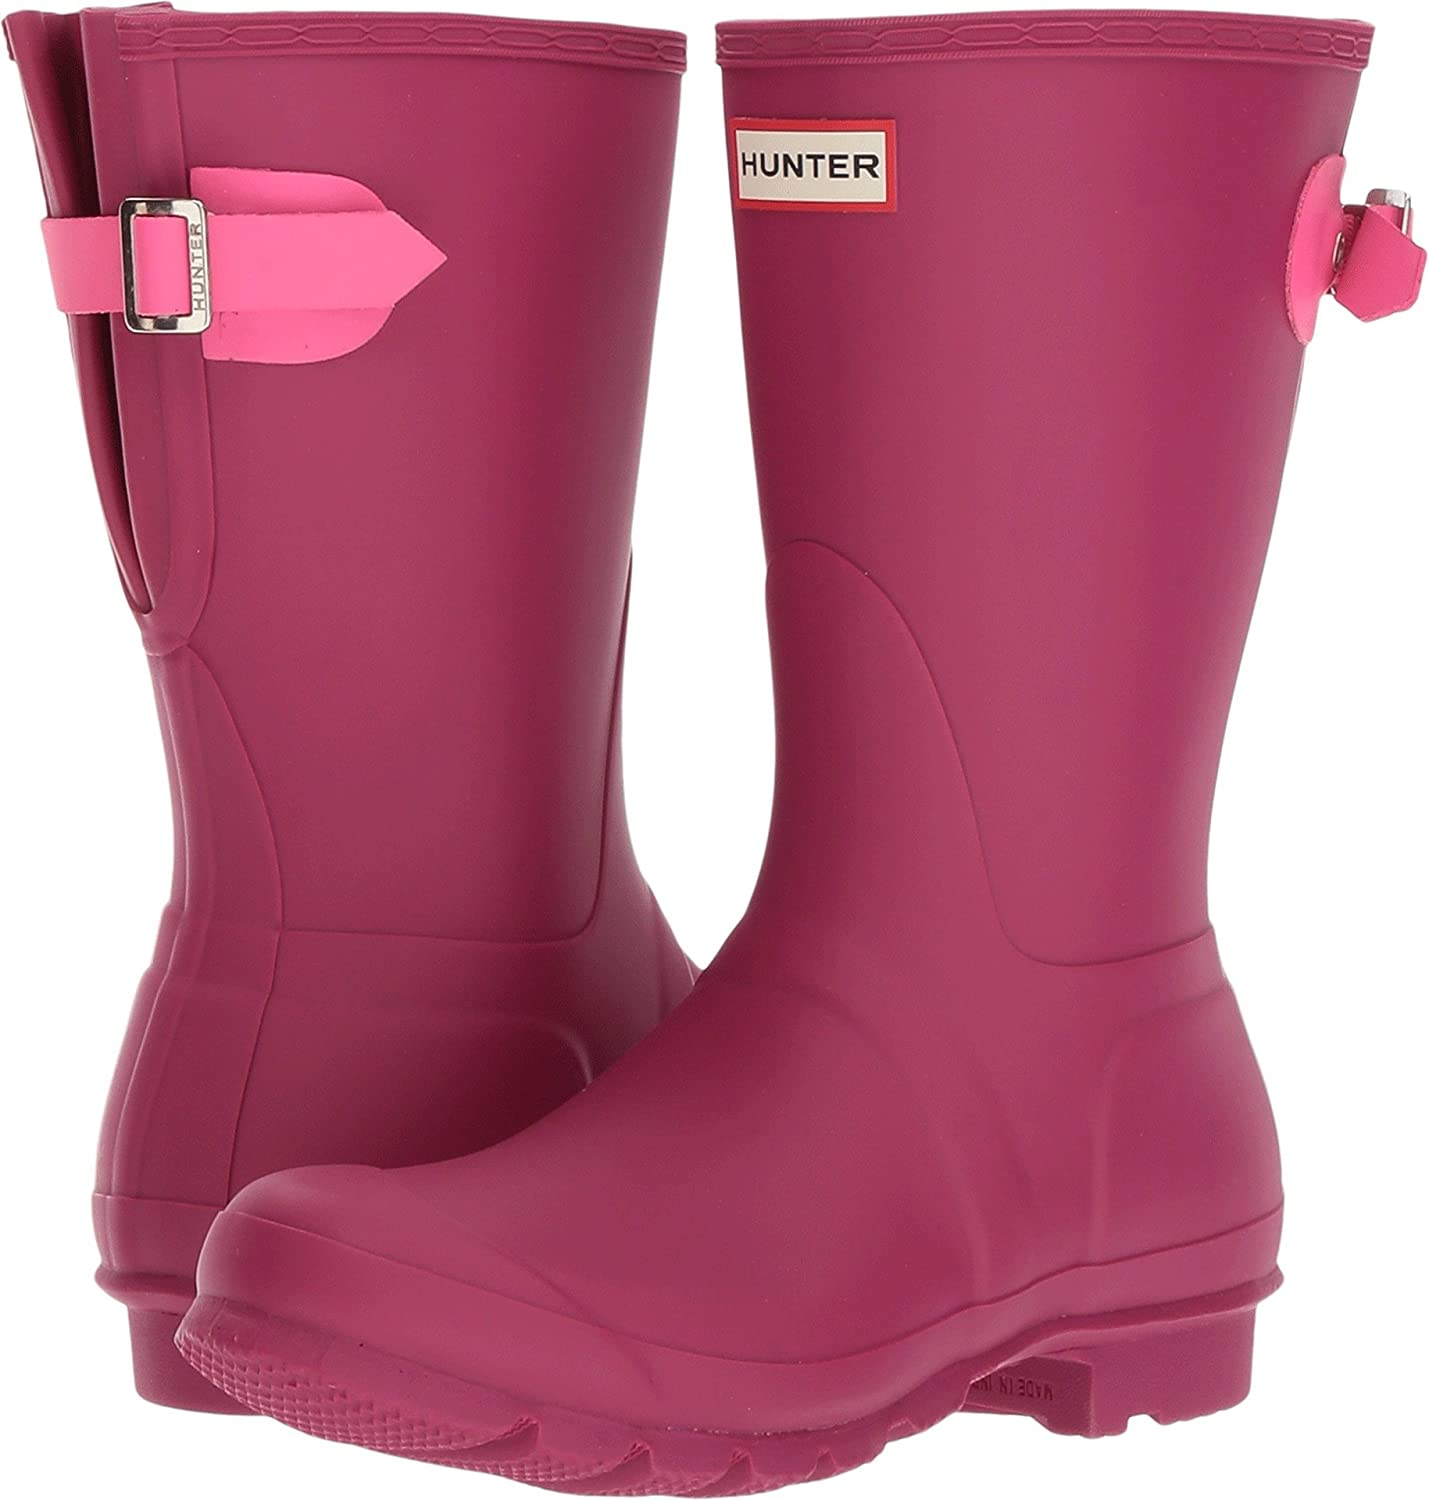 Hunter Women's Original Short Back Adjustable Rain Boot B06ZZZCJXG Pink/Ion 5 B(M) US|Dark Ion Pink/Ion B06ZZZCJXG Pink f2c3b3